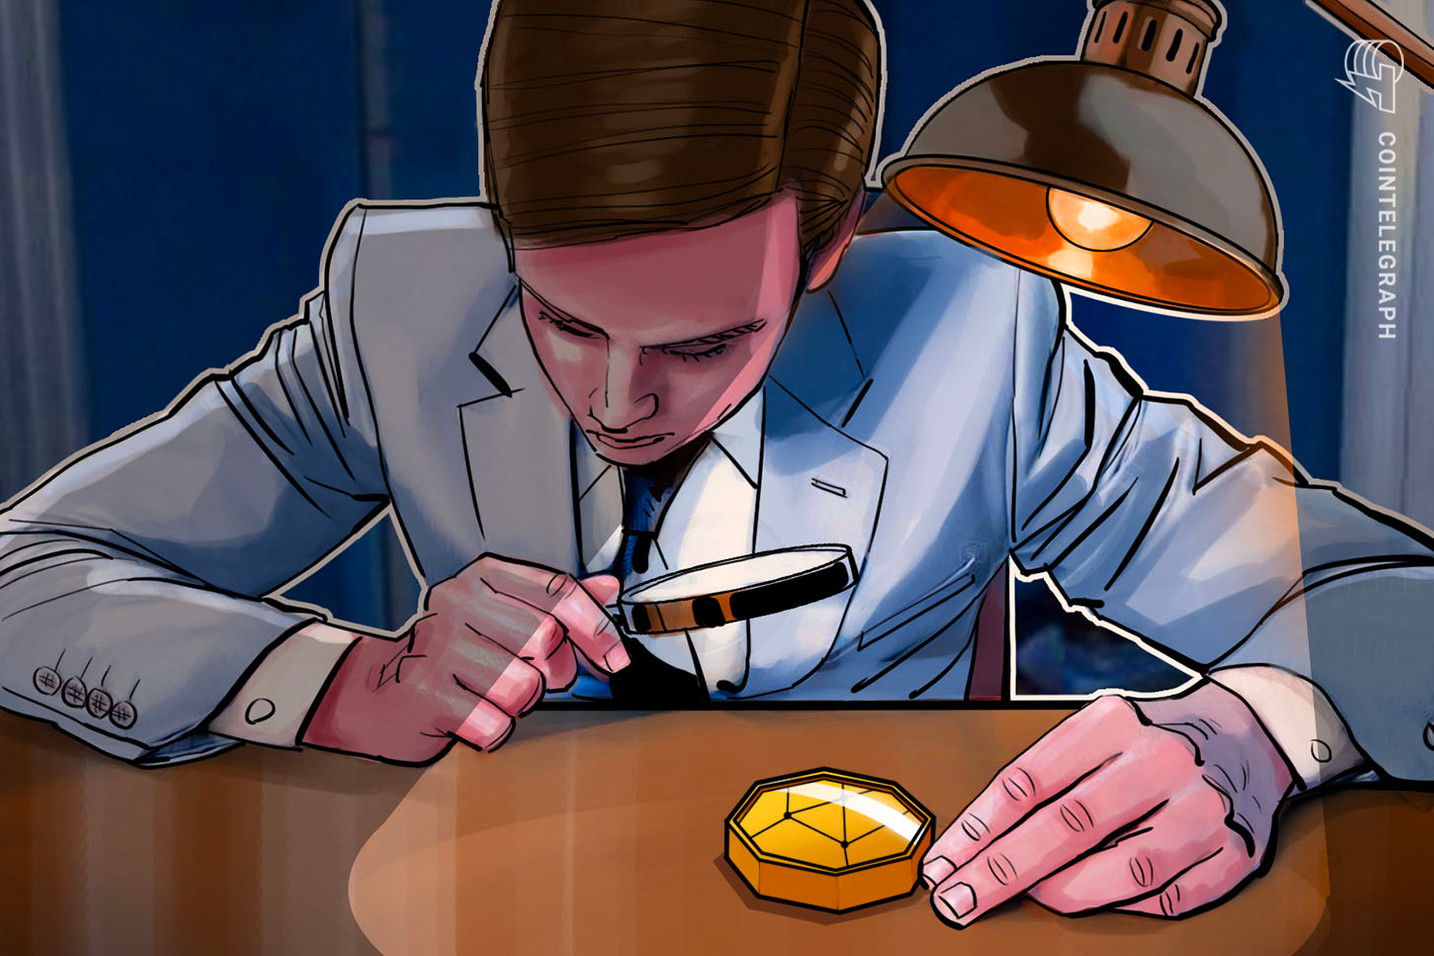 ZA Group Says Crypto Not Likely to Be a Threat to Monetary System